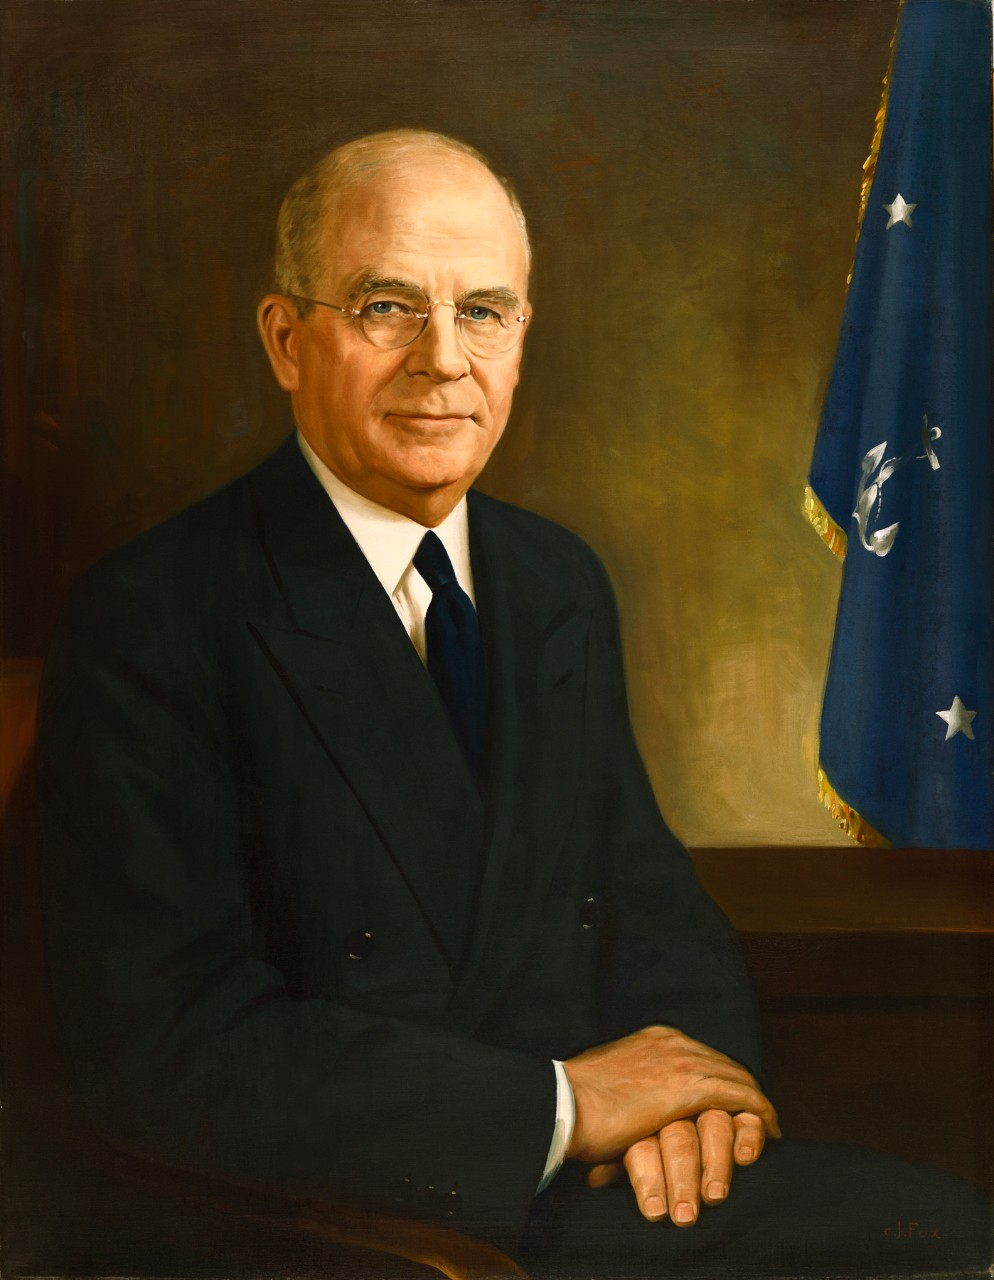 Portrait of Secretary of the Navy Francis Patrick Matthews